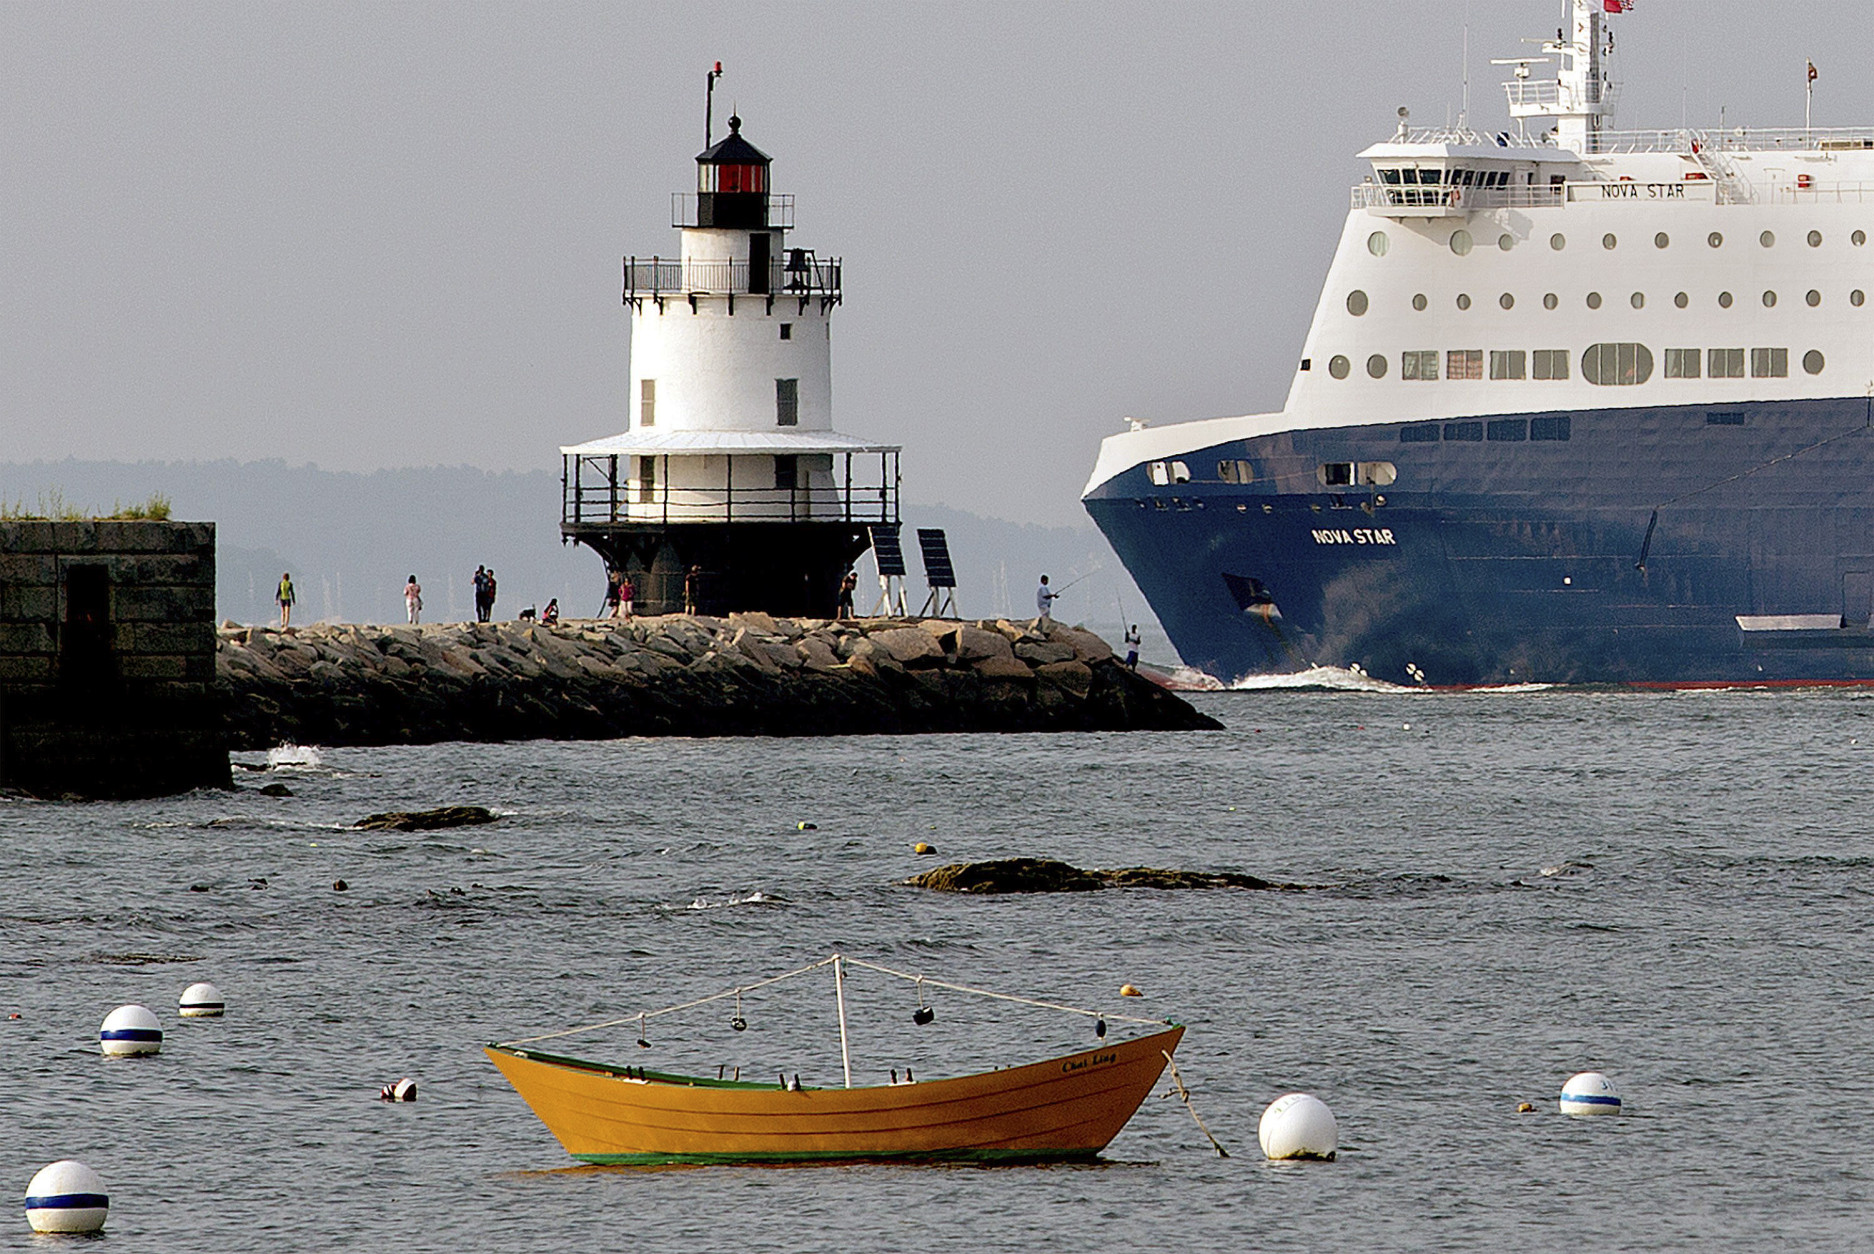 In this July 13, 2015 photo, the Nova Star ferry travels past fishermen and tourists near the Spring Point Ledge Light on its way to the Ocean Gateway terminal in Portland, Maine. With the decline of groundfishing and freight shipping, Maine's largest city increasingly relies on tourists passing through its port. (Gabe Souza/Portland Press Herald via AP) MANDATORY CREDIT